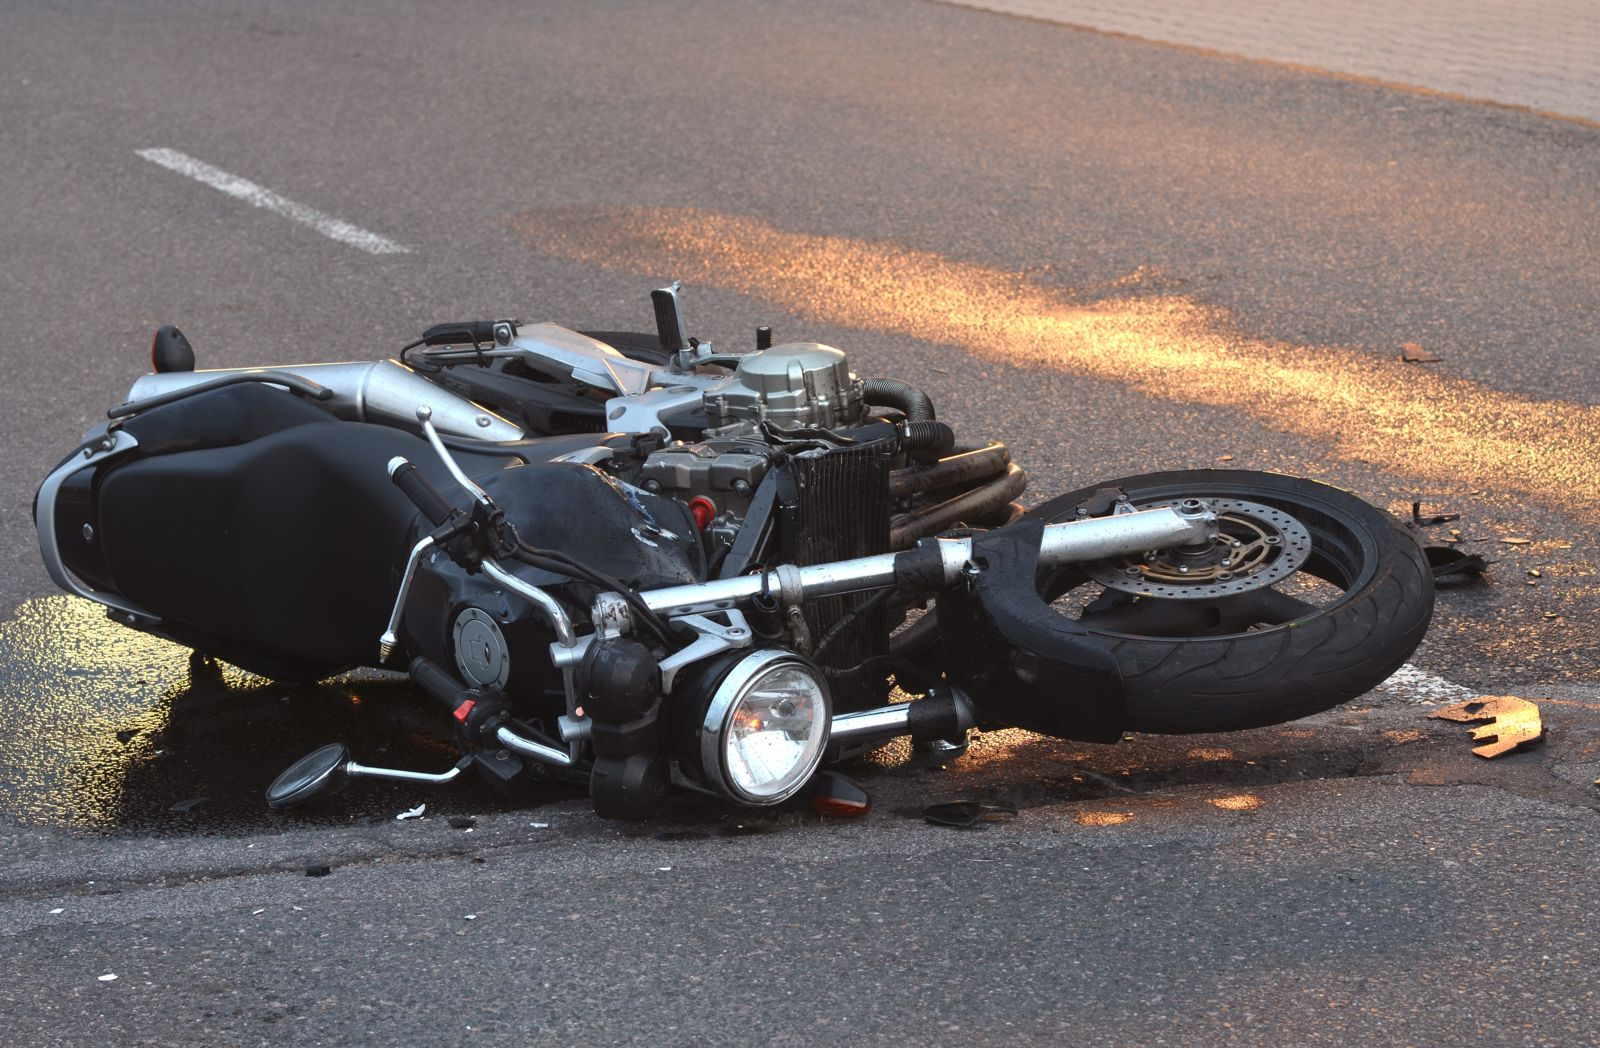 Aftermath of Motorcycle Accident